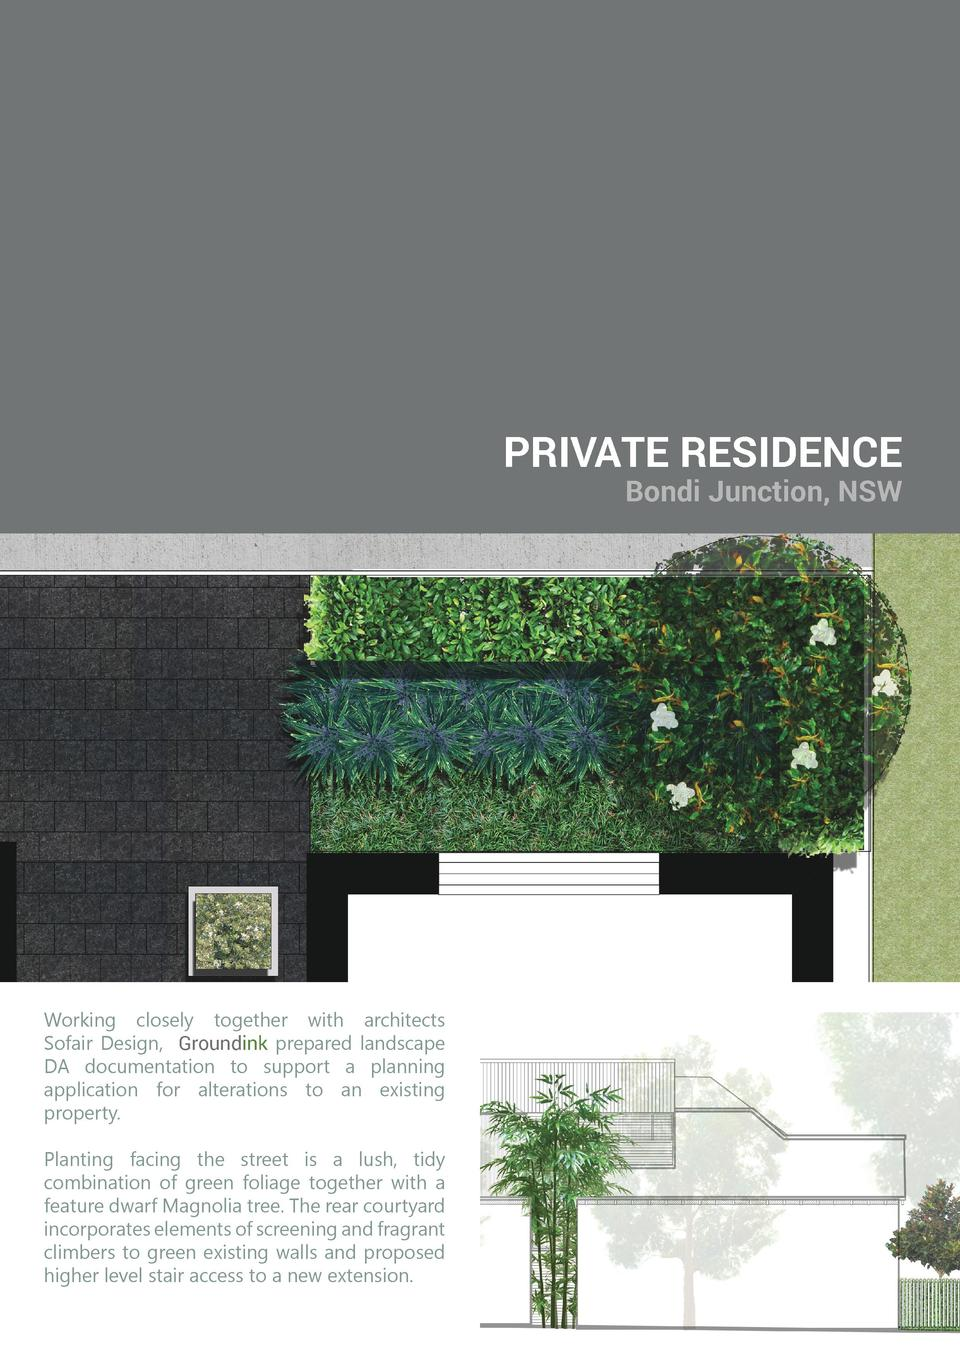 PRIVATE RESIDENCE  Bondi Junction, NSW  Working closely together with architects Sofair Design, Groundink prepared landsca...